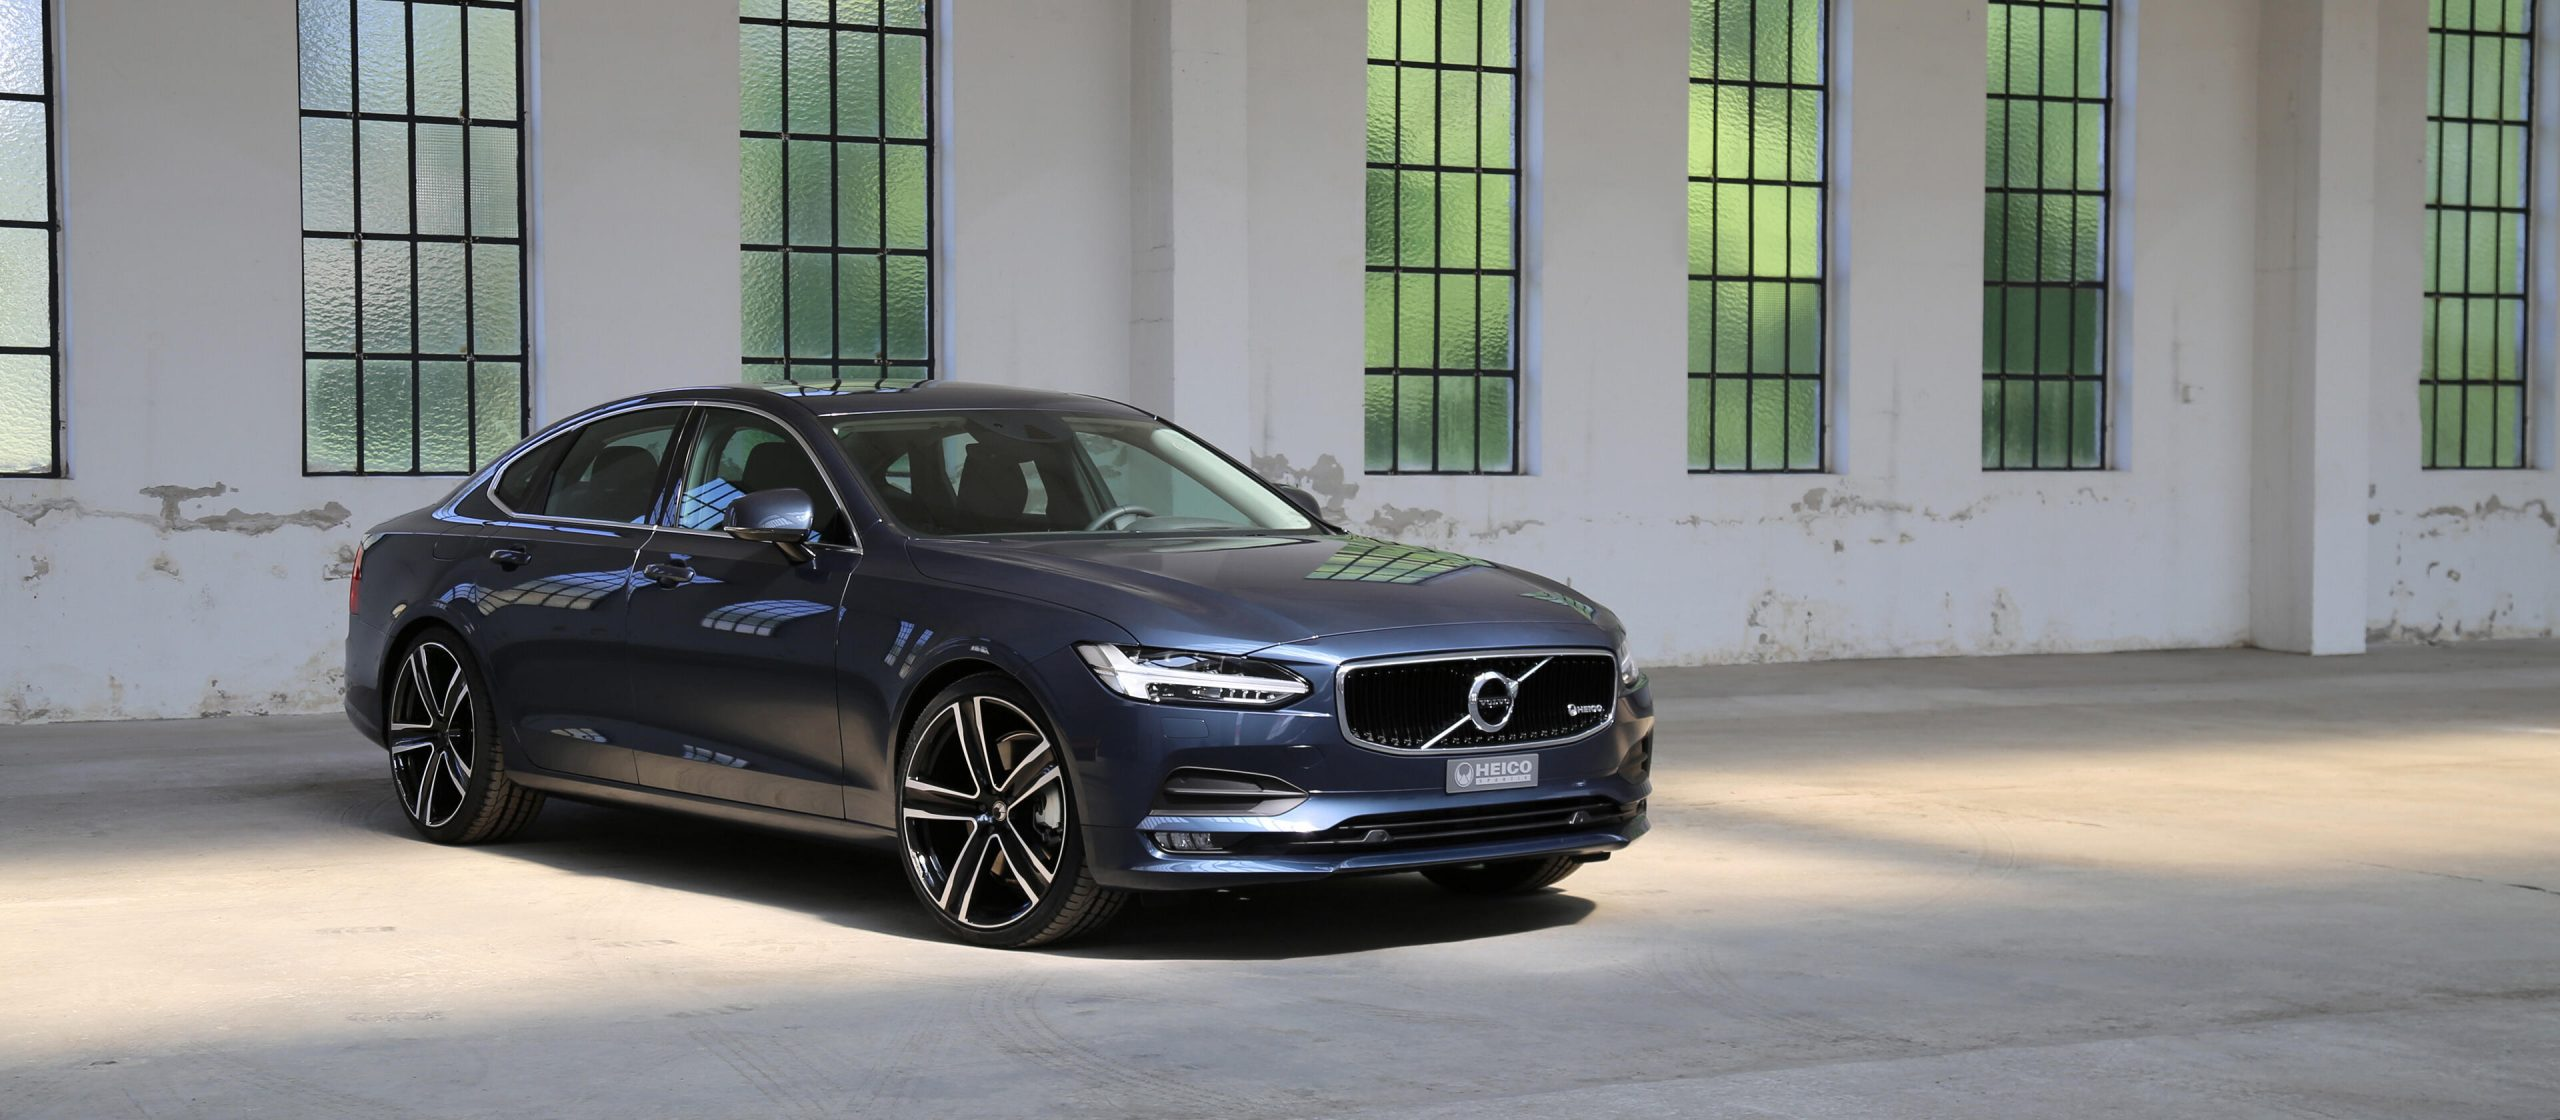 heico-sportiv-volvo-s90-234-classic-depot-front-2